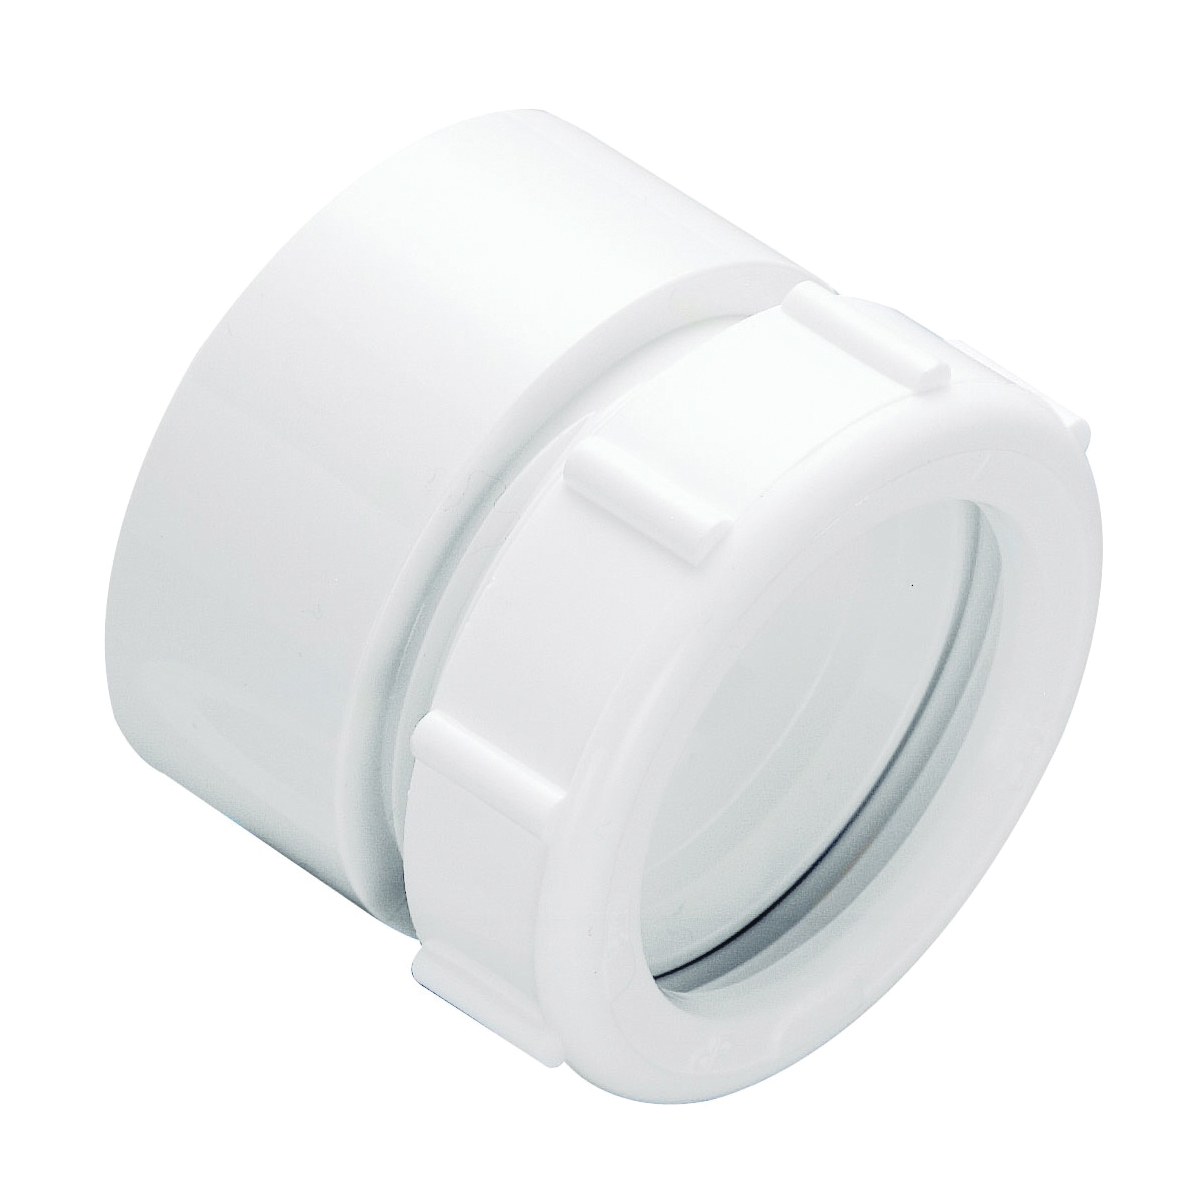 Picture of Plumb Pak PP20999 Marvel Connector, 1-1/2 in Compression, 1-1/2 in Compression, White